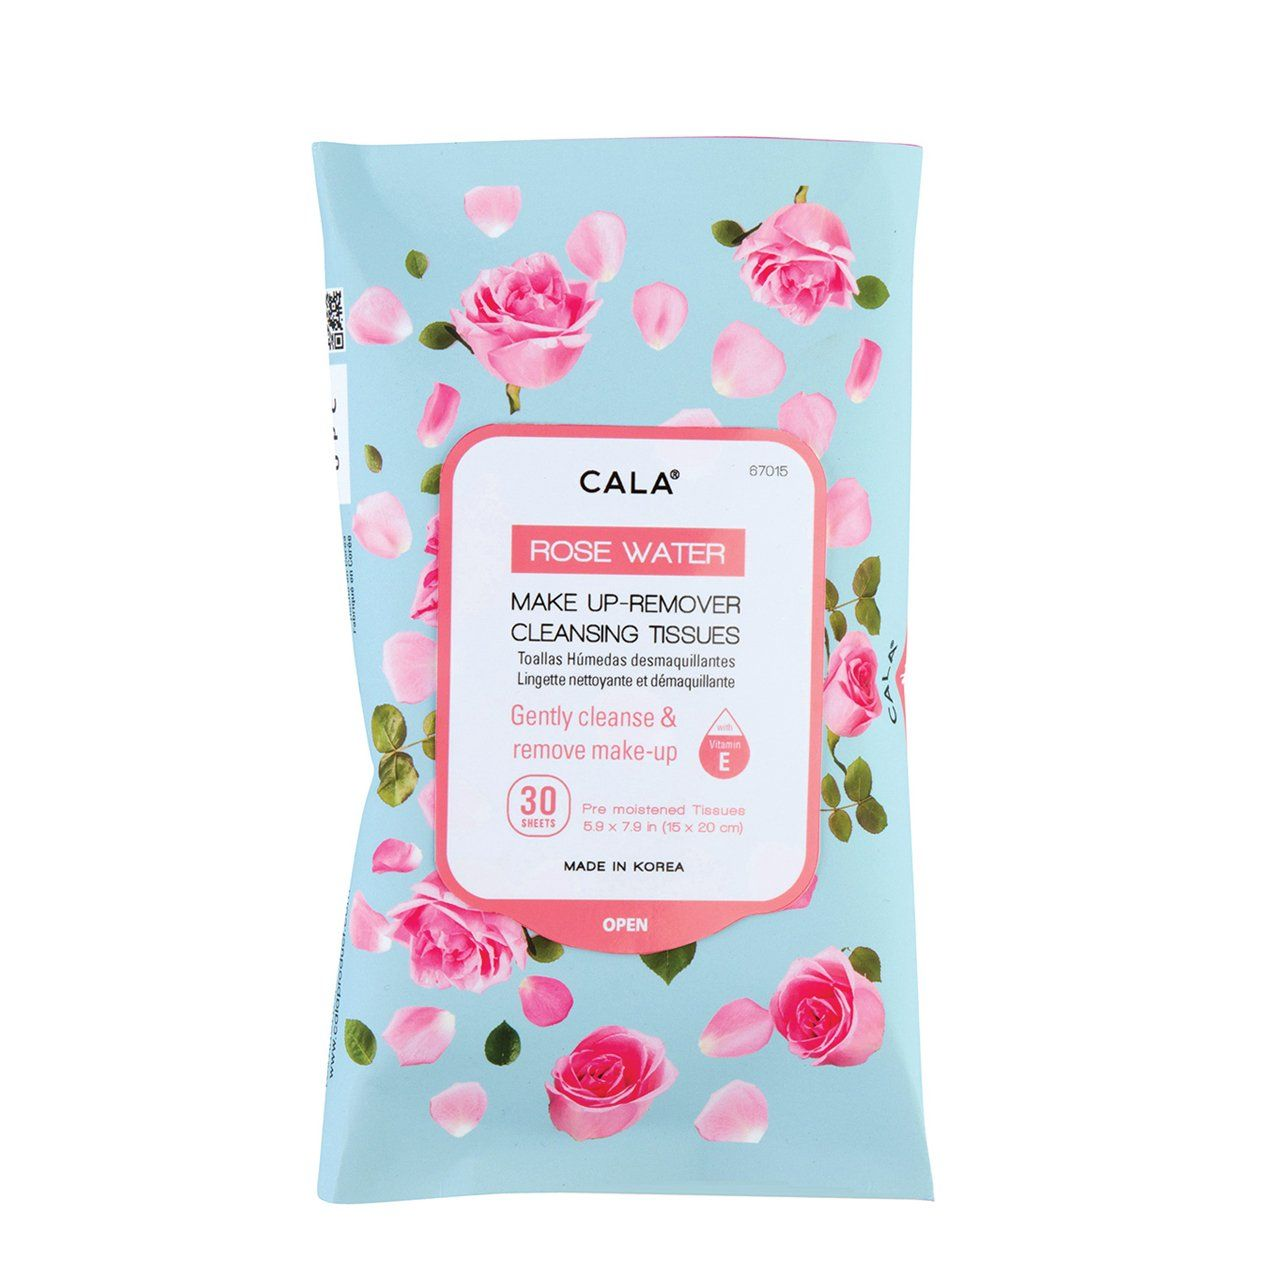 Cala Rose Water Makeup Remover Cleansing Tissues #67015 (6PACK)